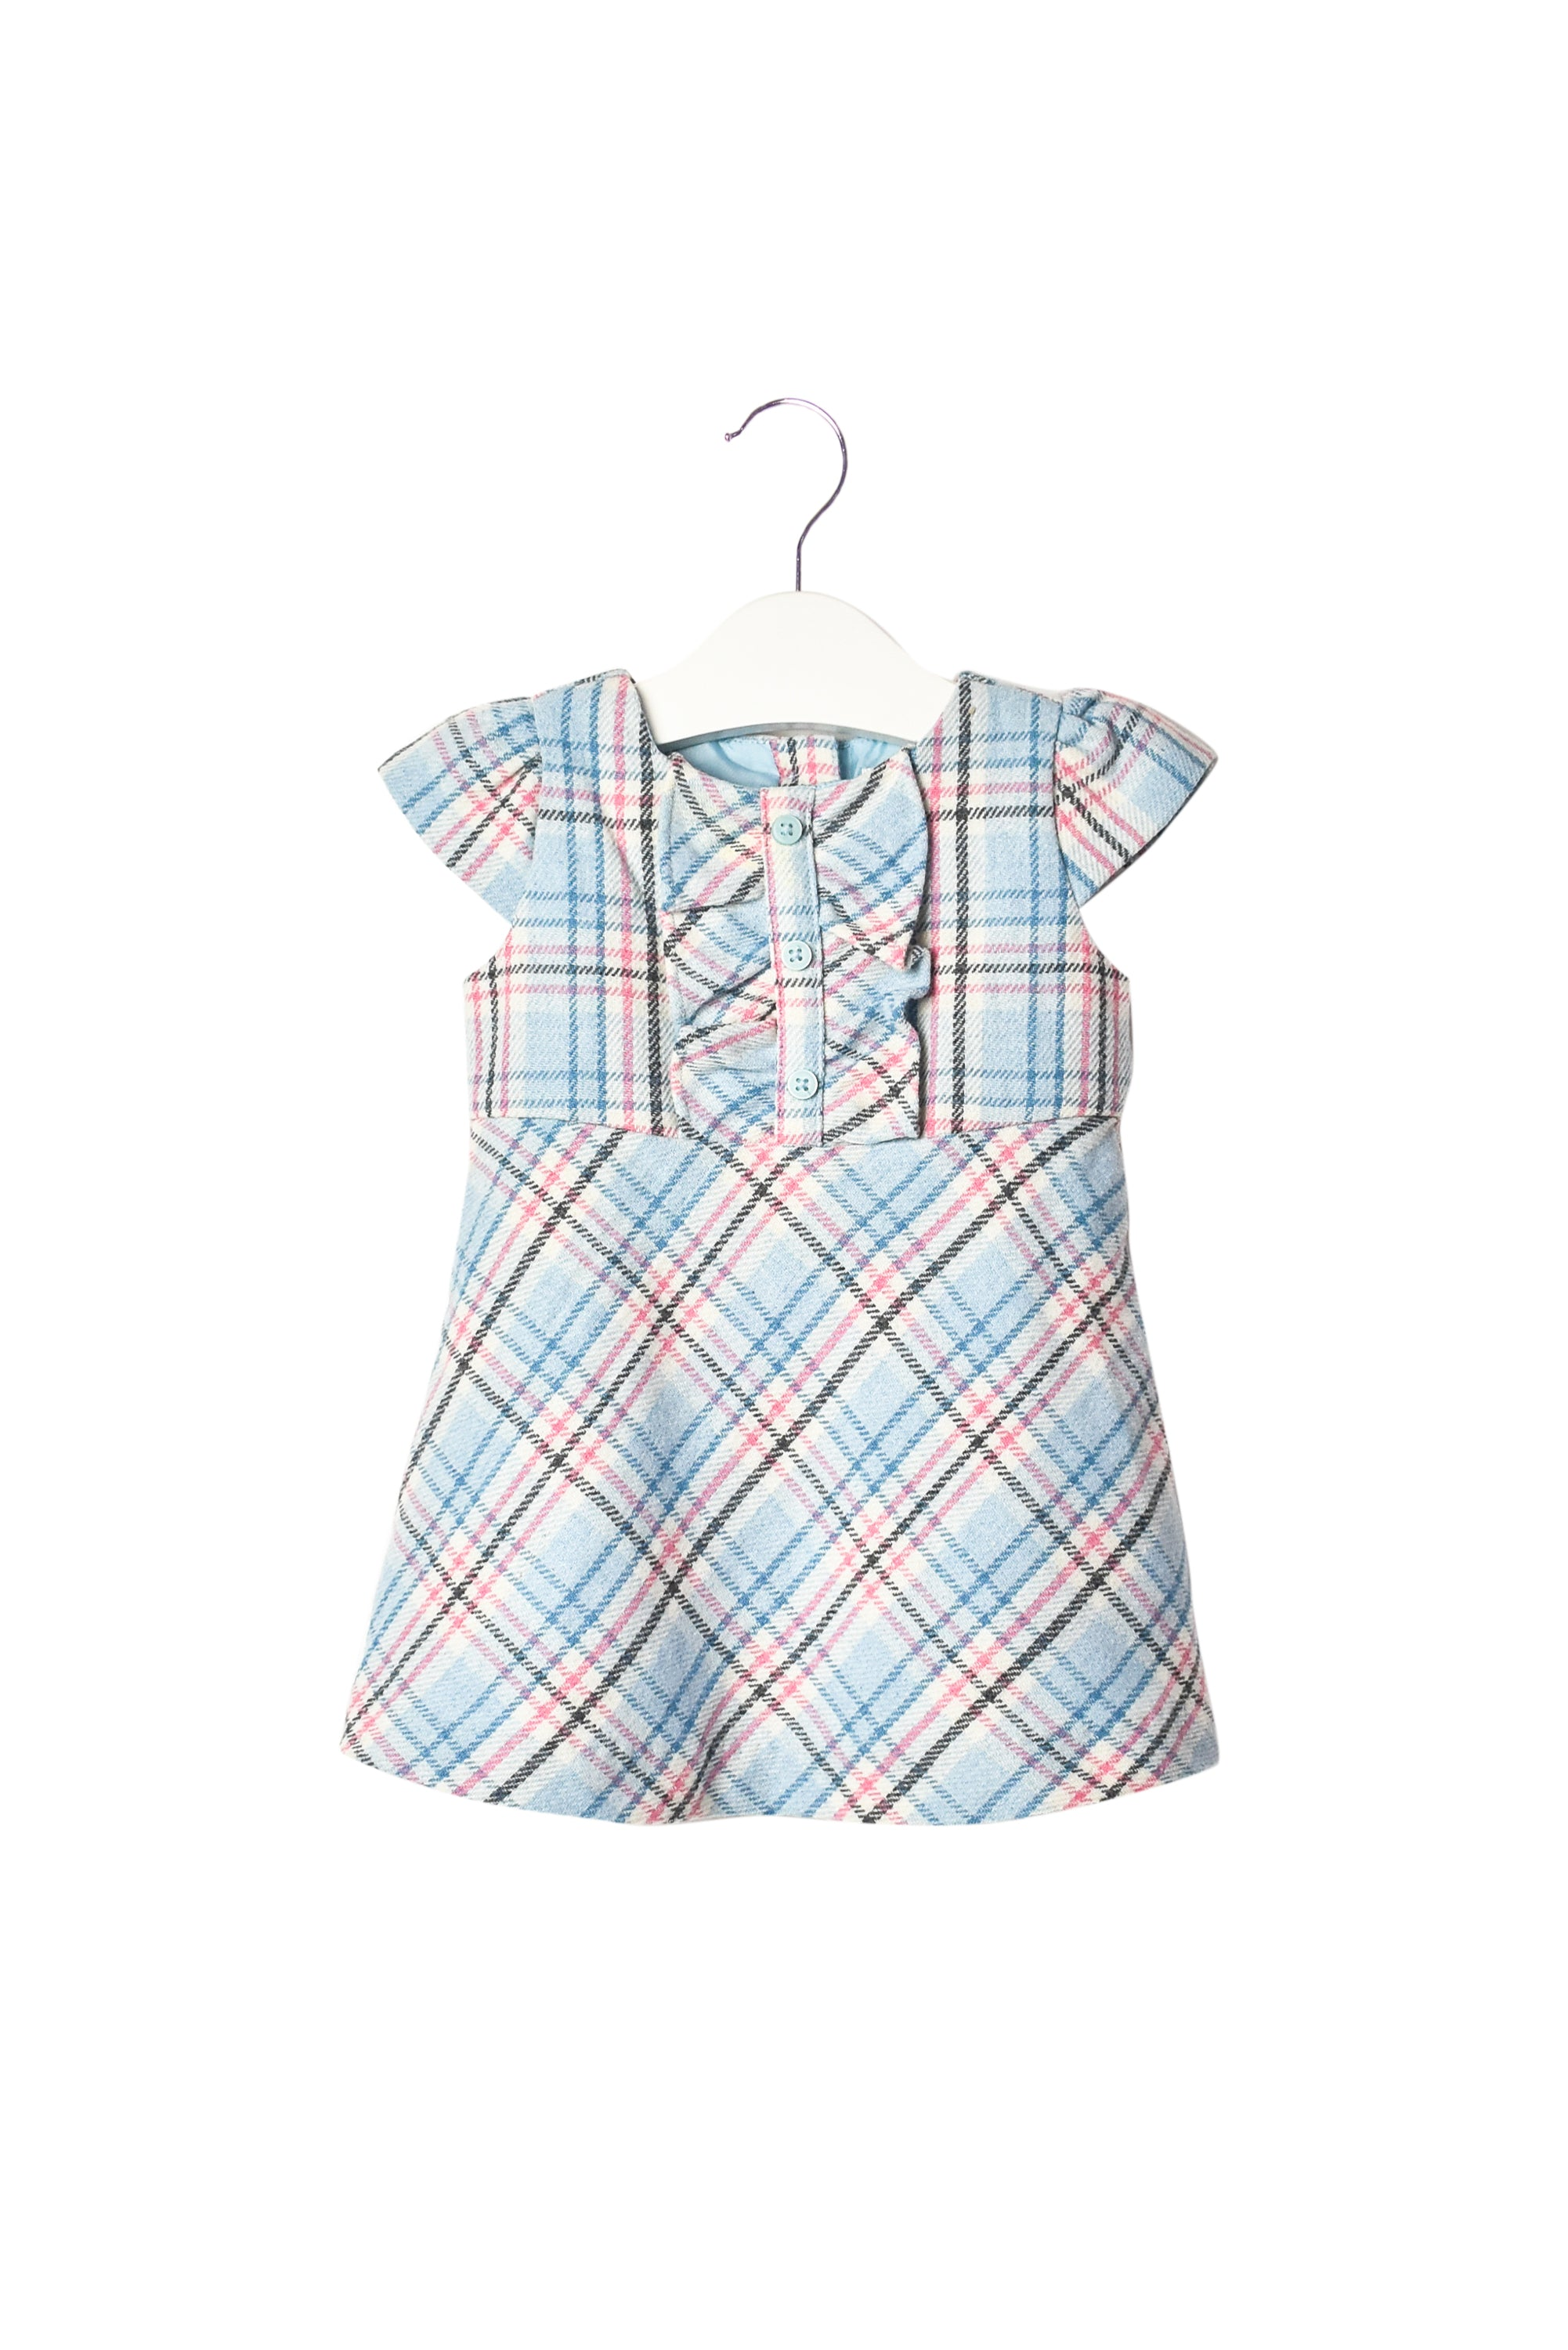 10007341 Janie & Jack Kids~ Dress and Bloomer 3-6M at Retykle